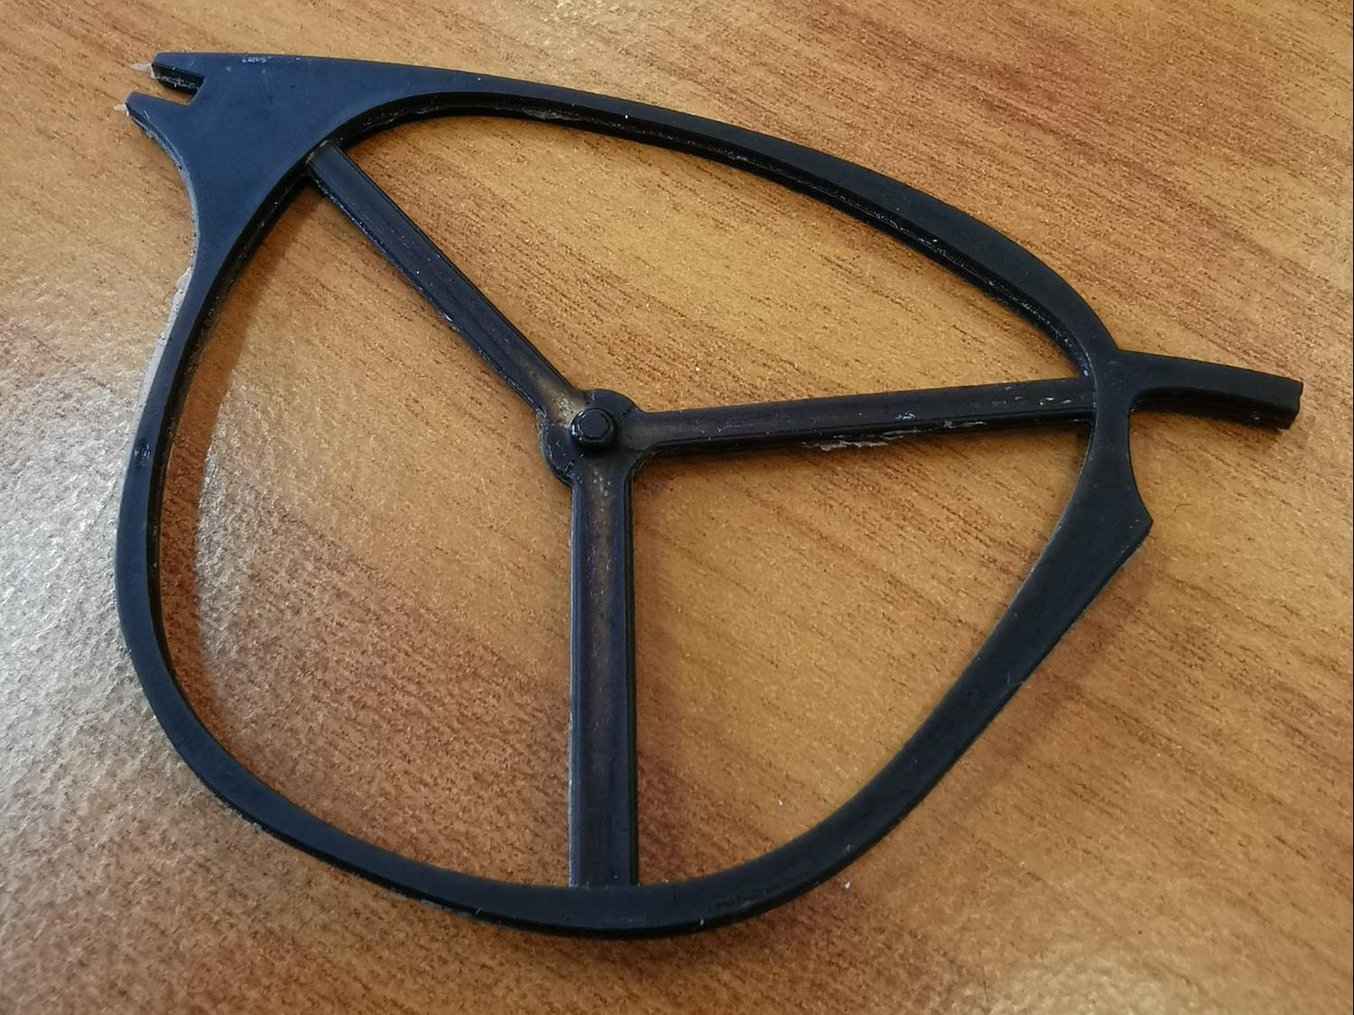 An eyewear frame manufactured using 3D printed molds.